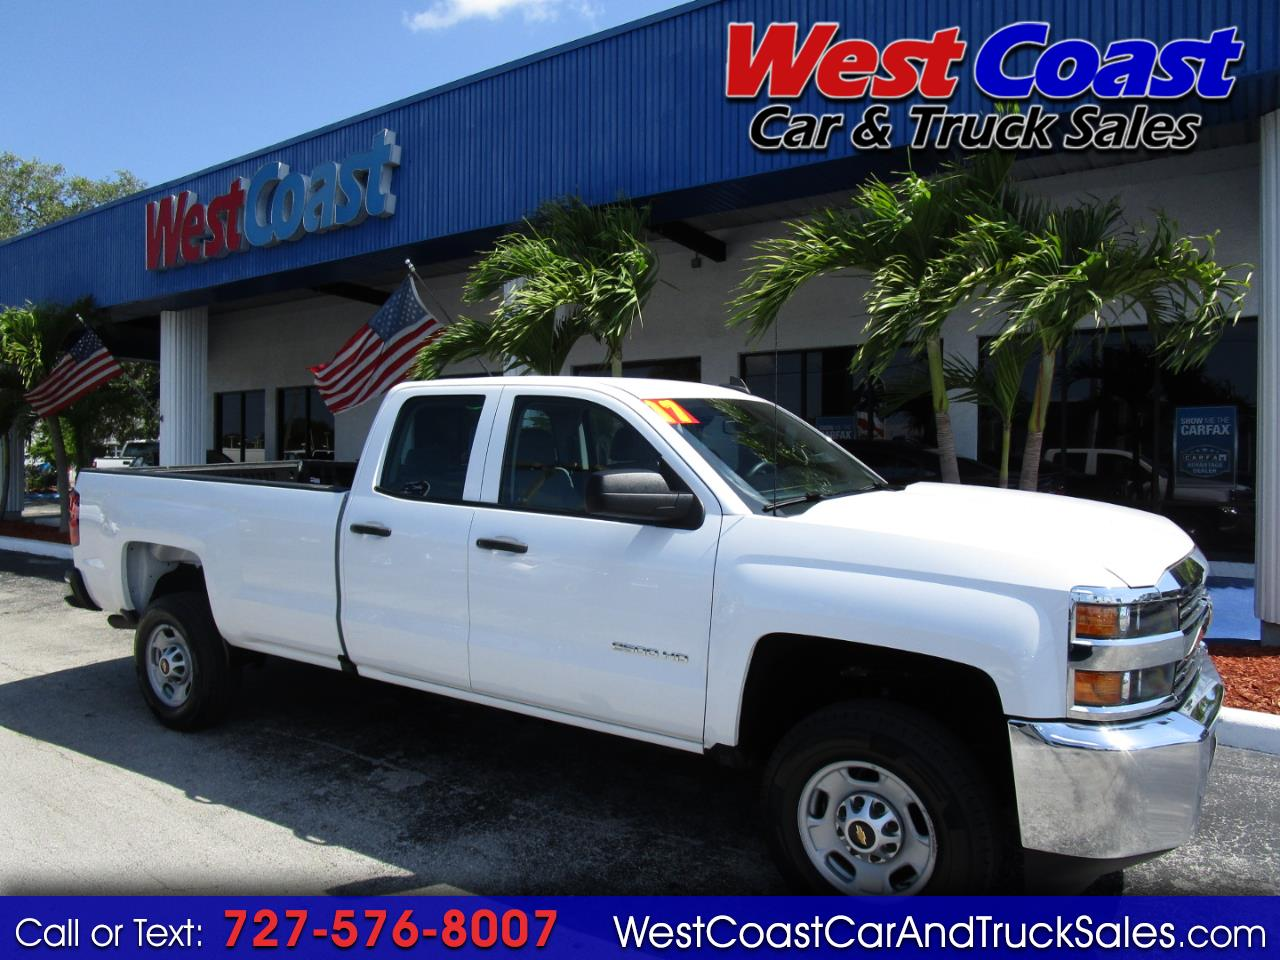 2017 Chevrolet Silverado 2500 Crew Cab HD Long Bed